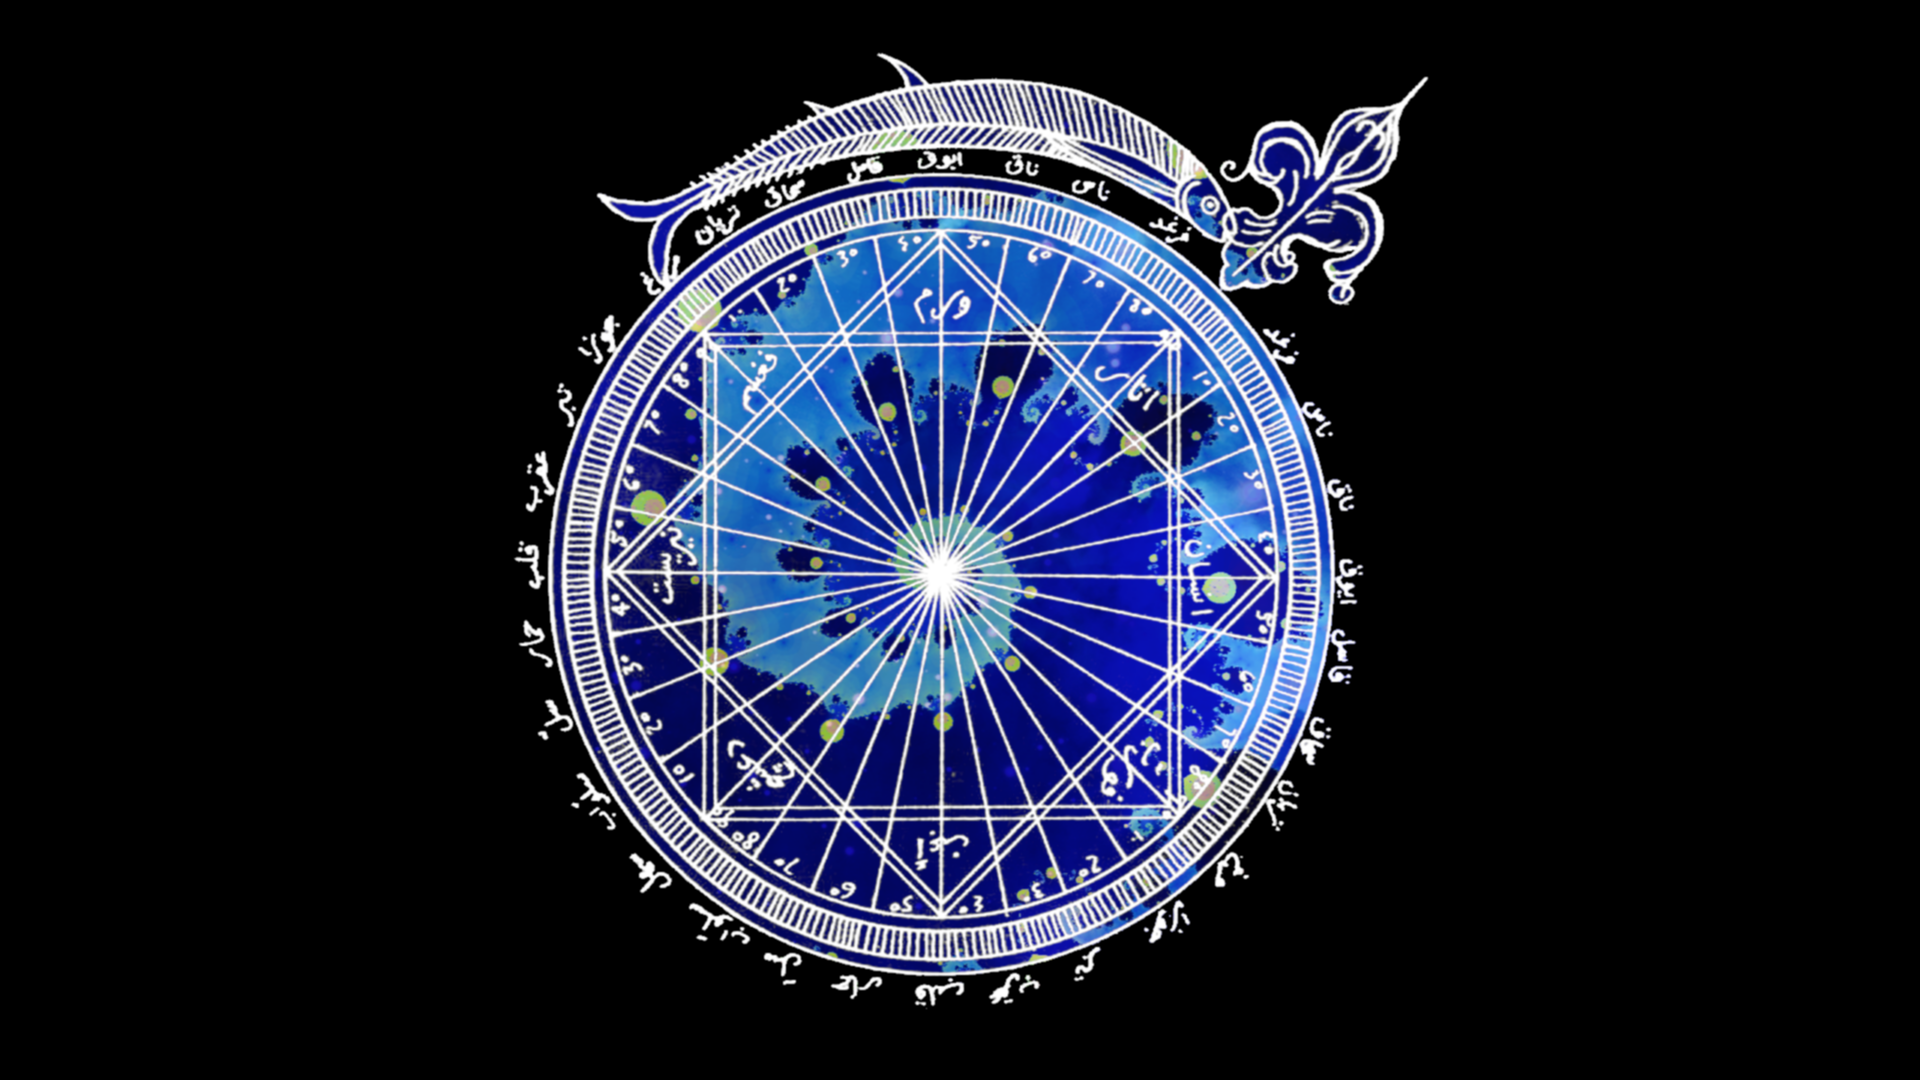 Free Download Astrology Hd Wallpapers Hd Wallpapers Backgrounds Of Your Choice 1920x1080 For Your Desktop Mobile Tablet Explore 47 Astrology Wallpaper Leo Zodiac Wallpaper Zodiac Signs Wallpaper Bing Wallpaper Funny Signs